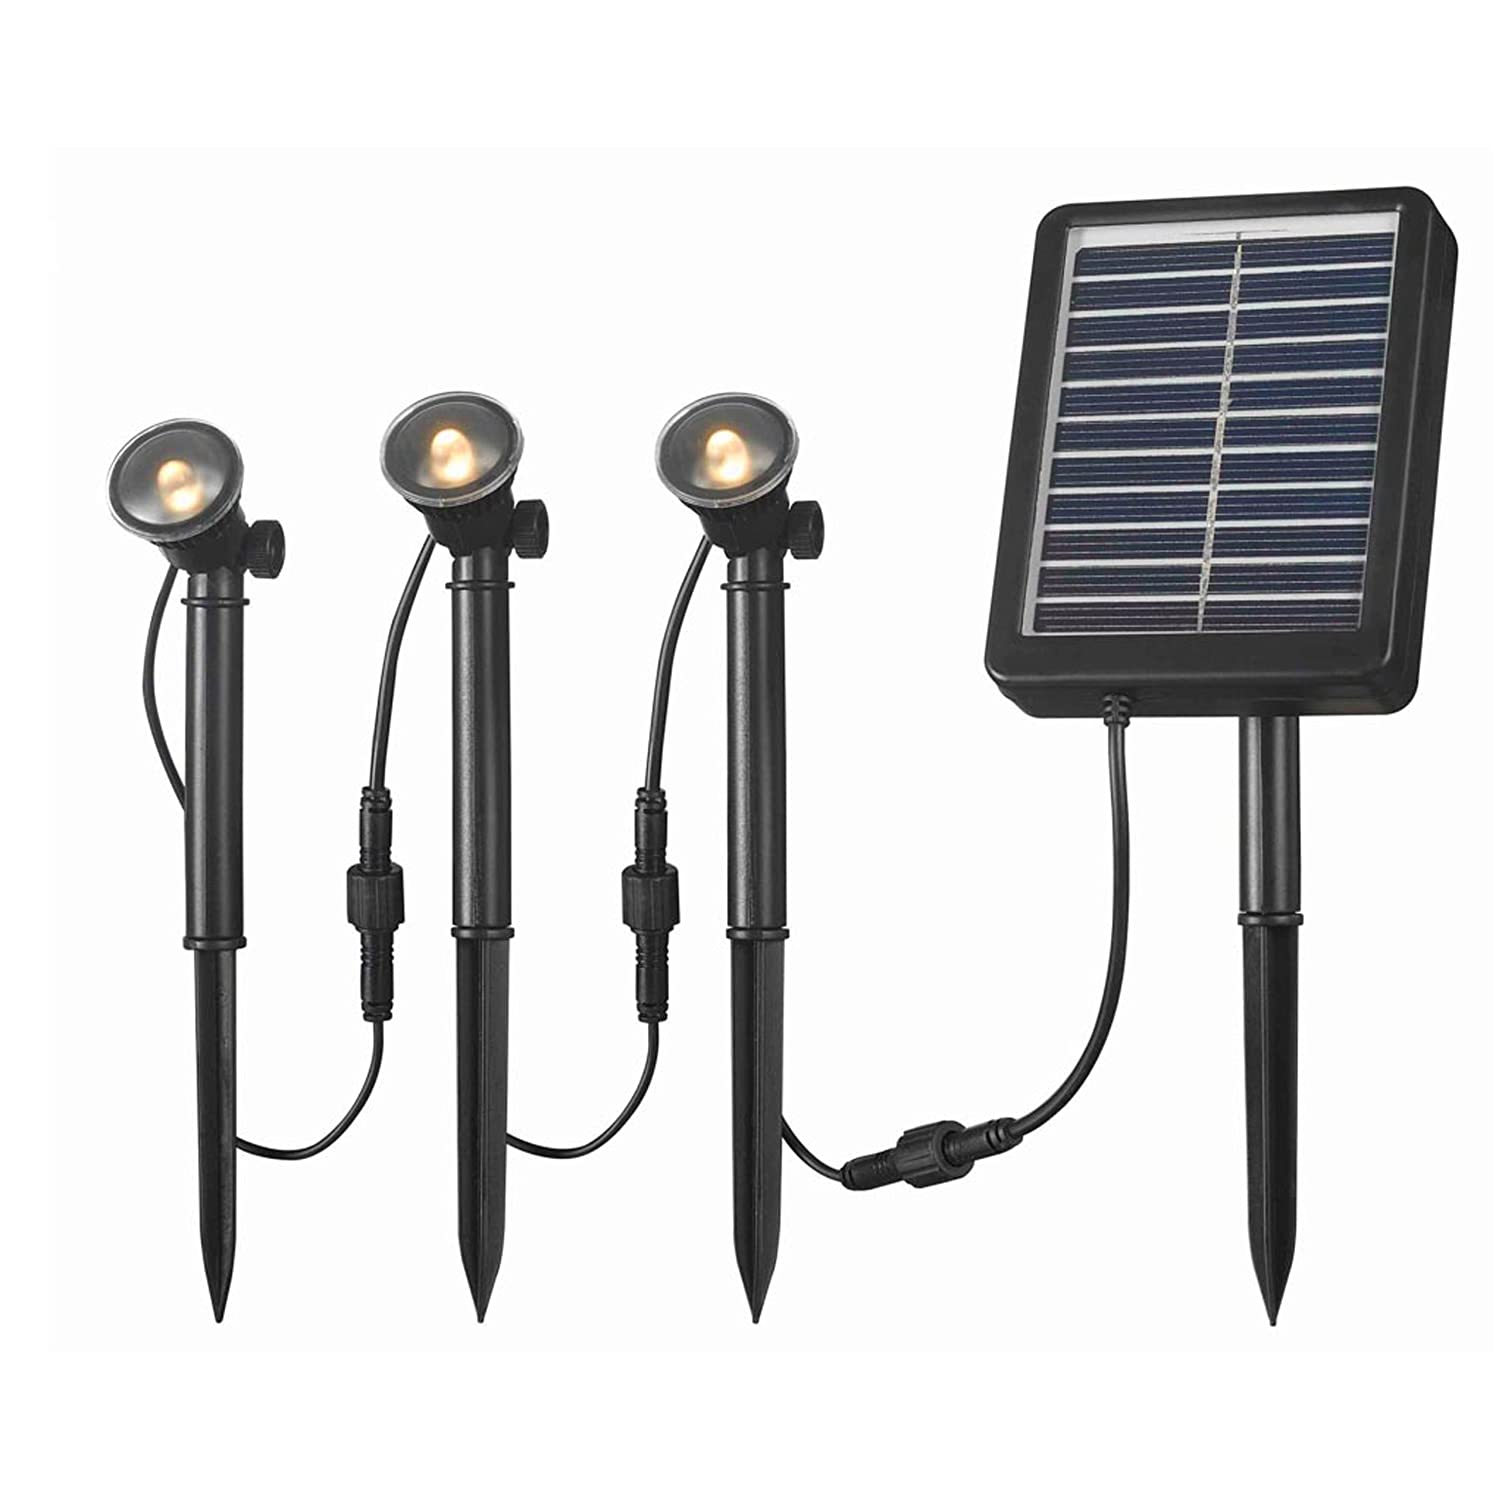 landscape spot yard walmart lights led amazon and friendly solar environment also lighting lowes porch for